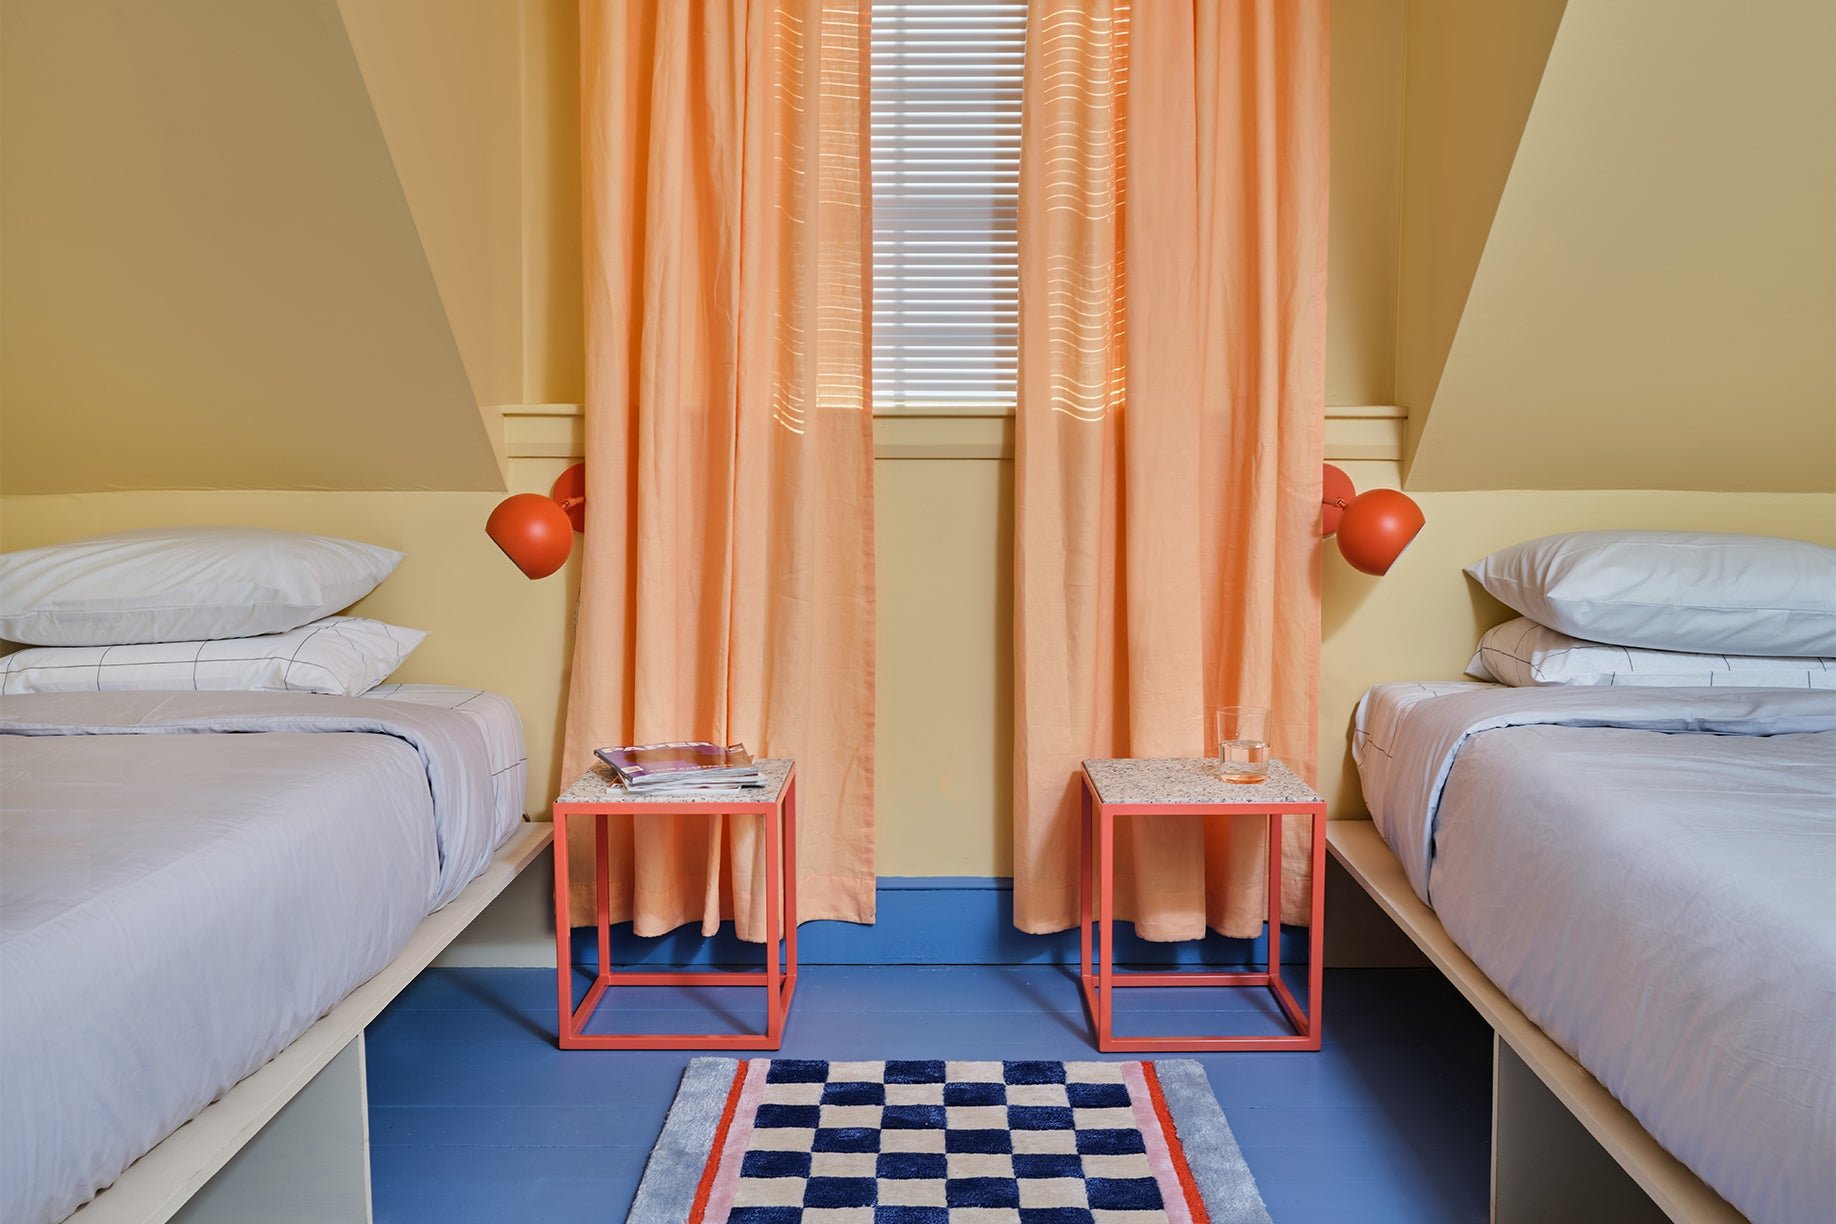 Room with yellow walls and twin blue beds